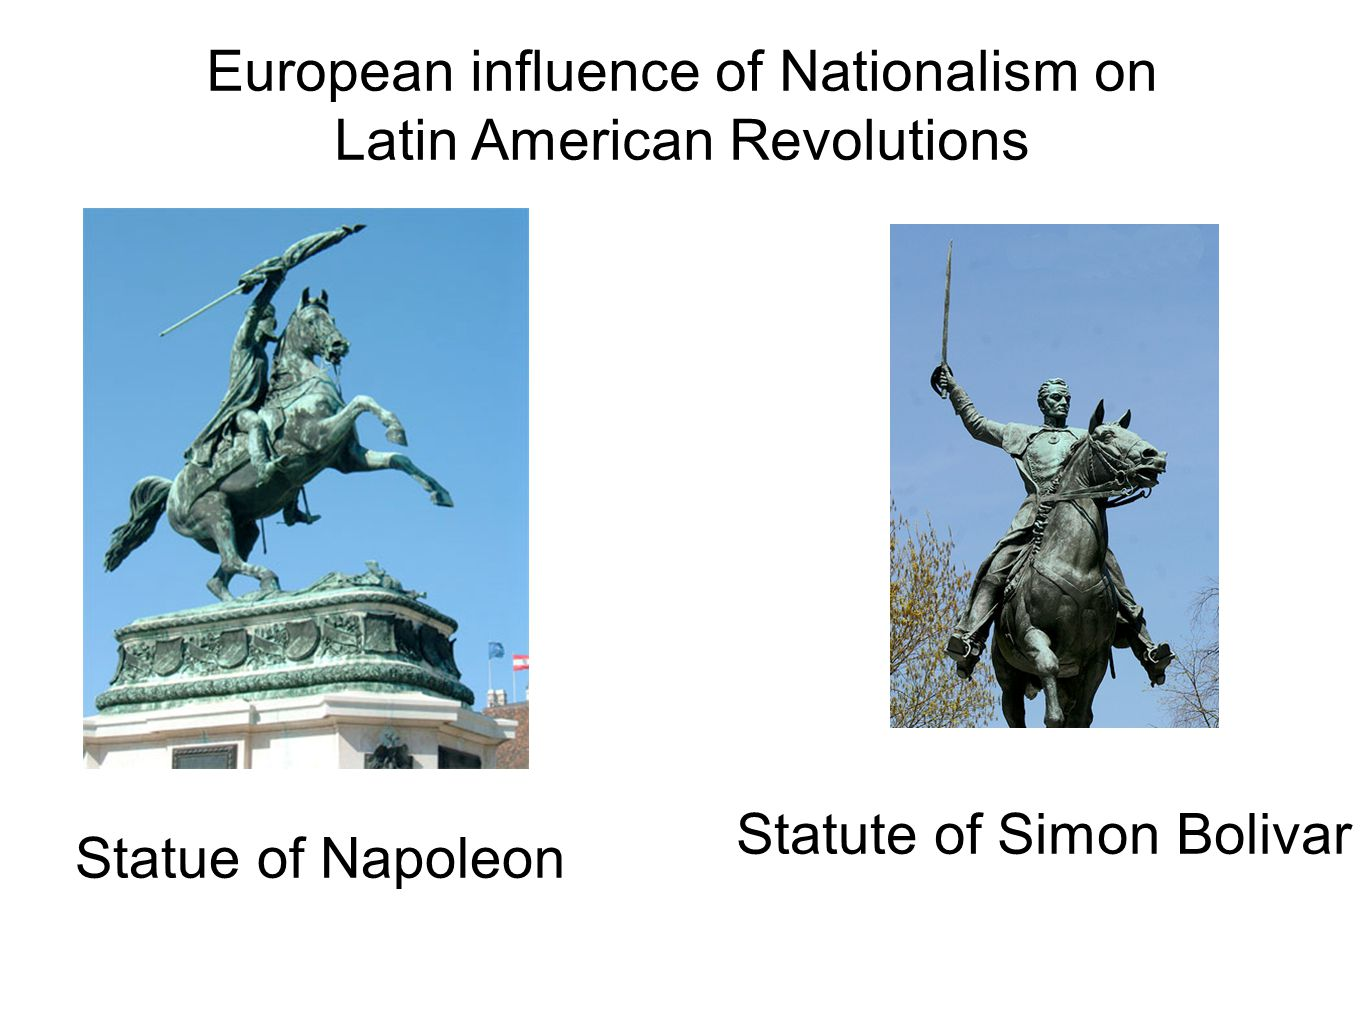 European influence of Nationalism on Latin American Revolutions